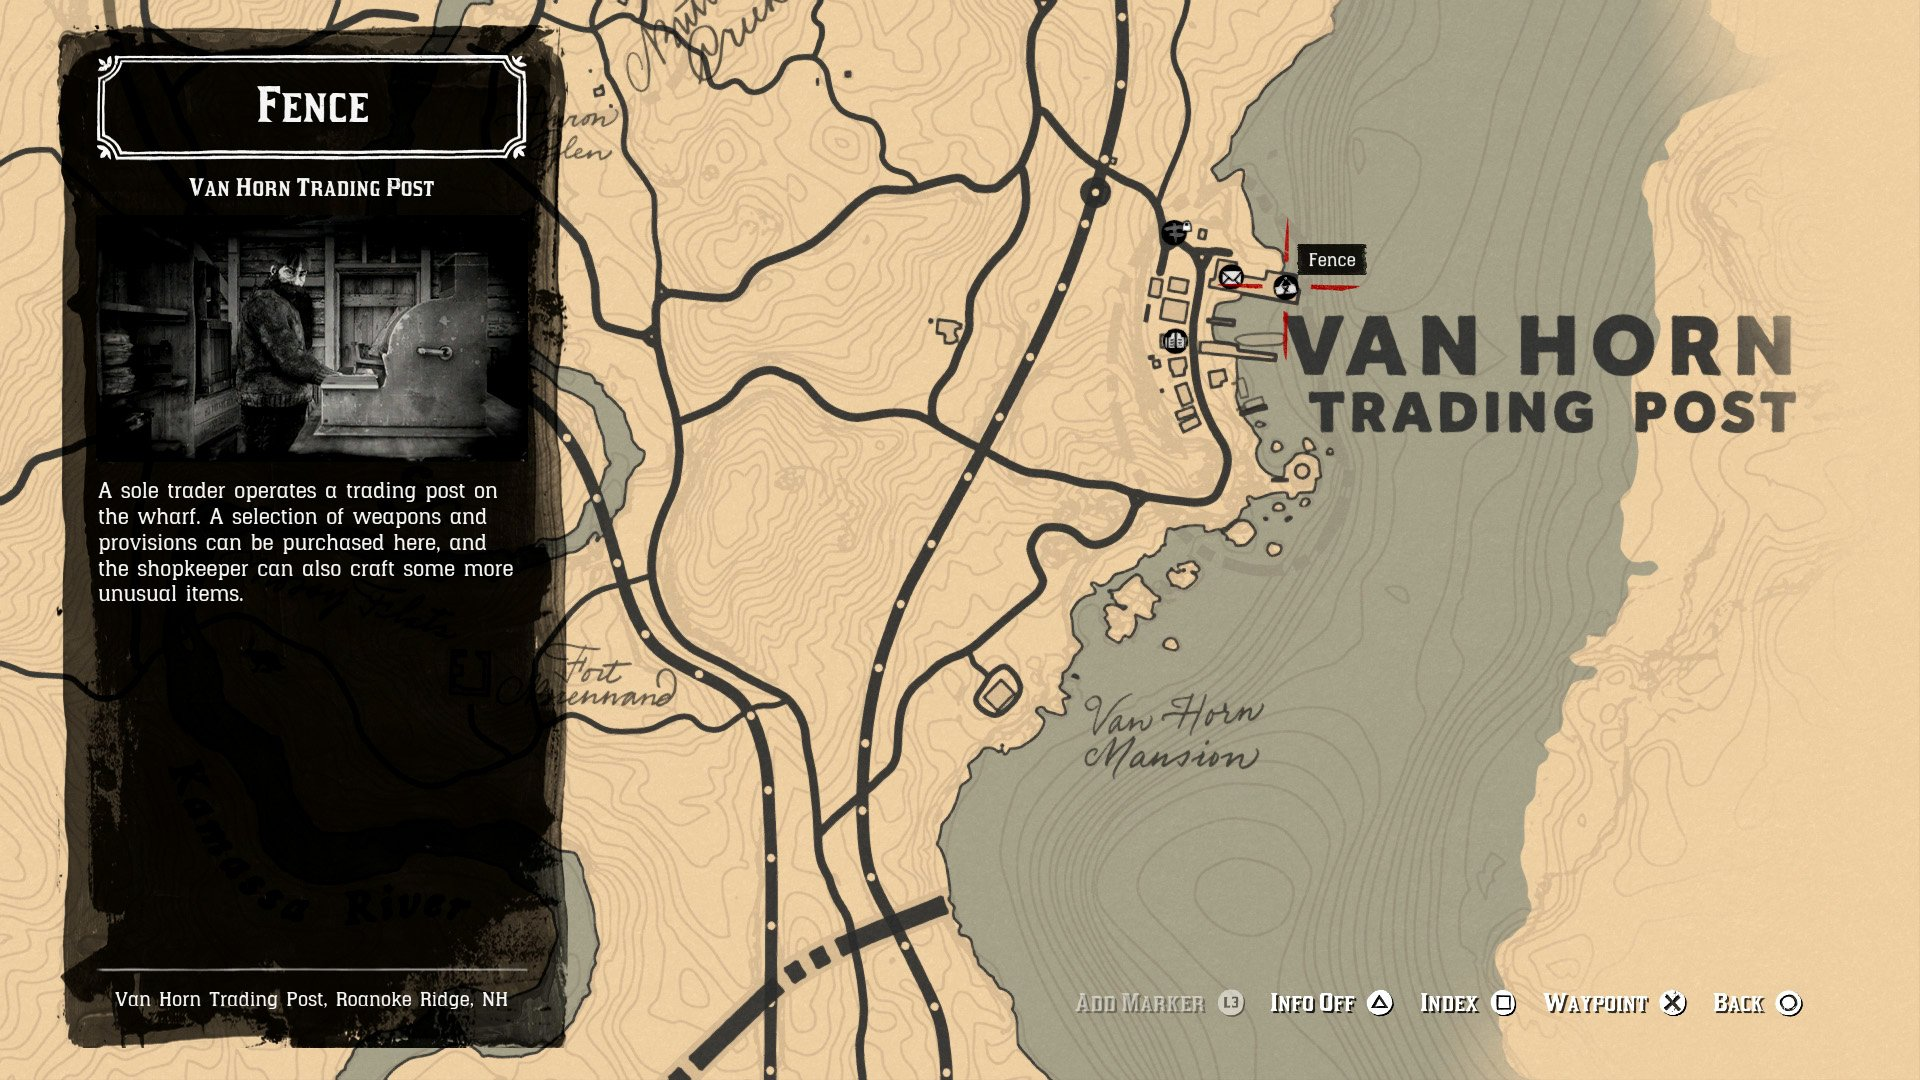 Van Horn Fence location - RDR2